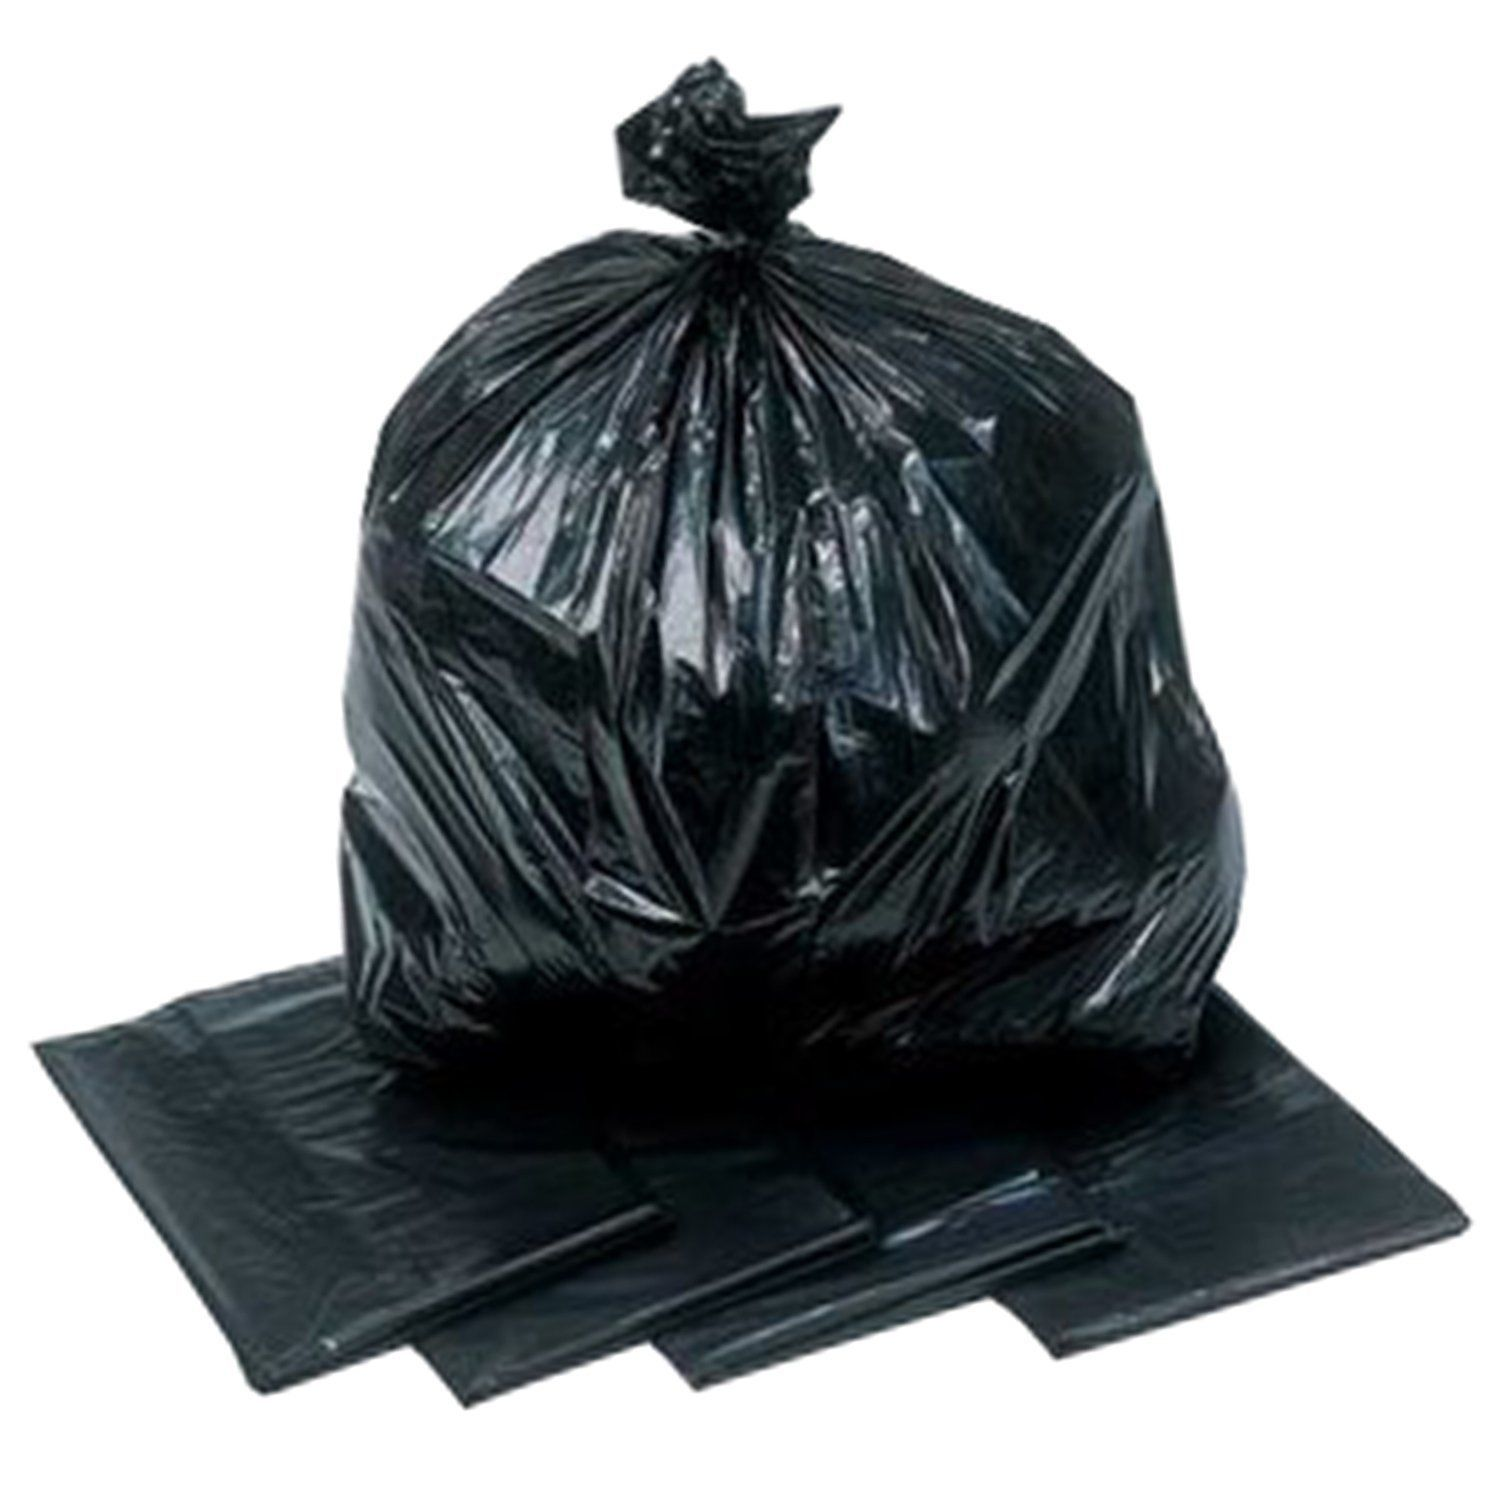 garbage container cleaning service near me